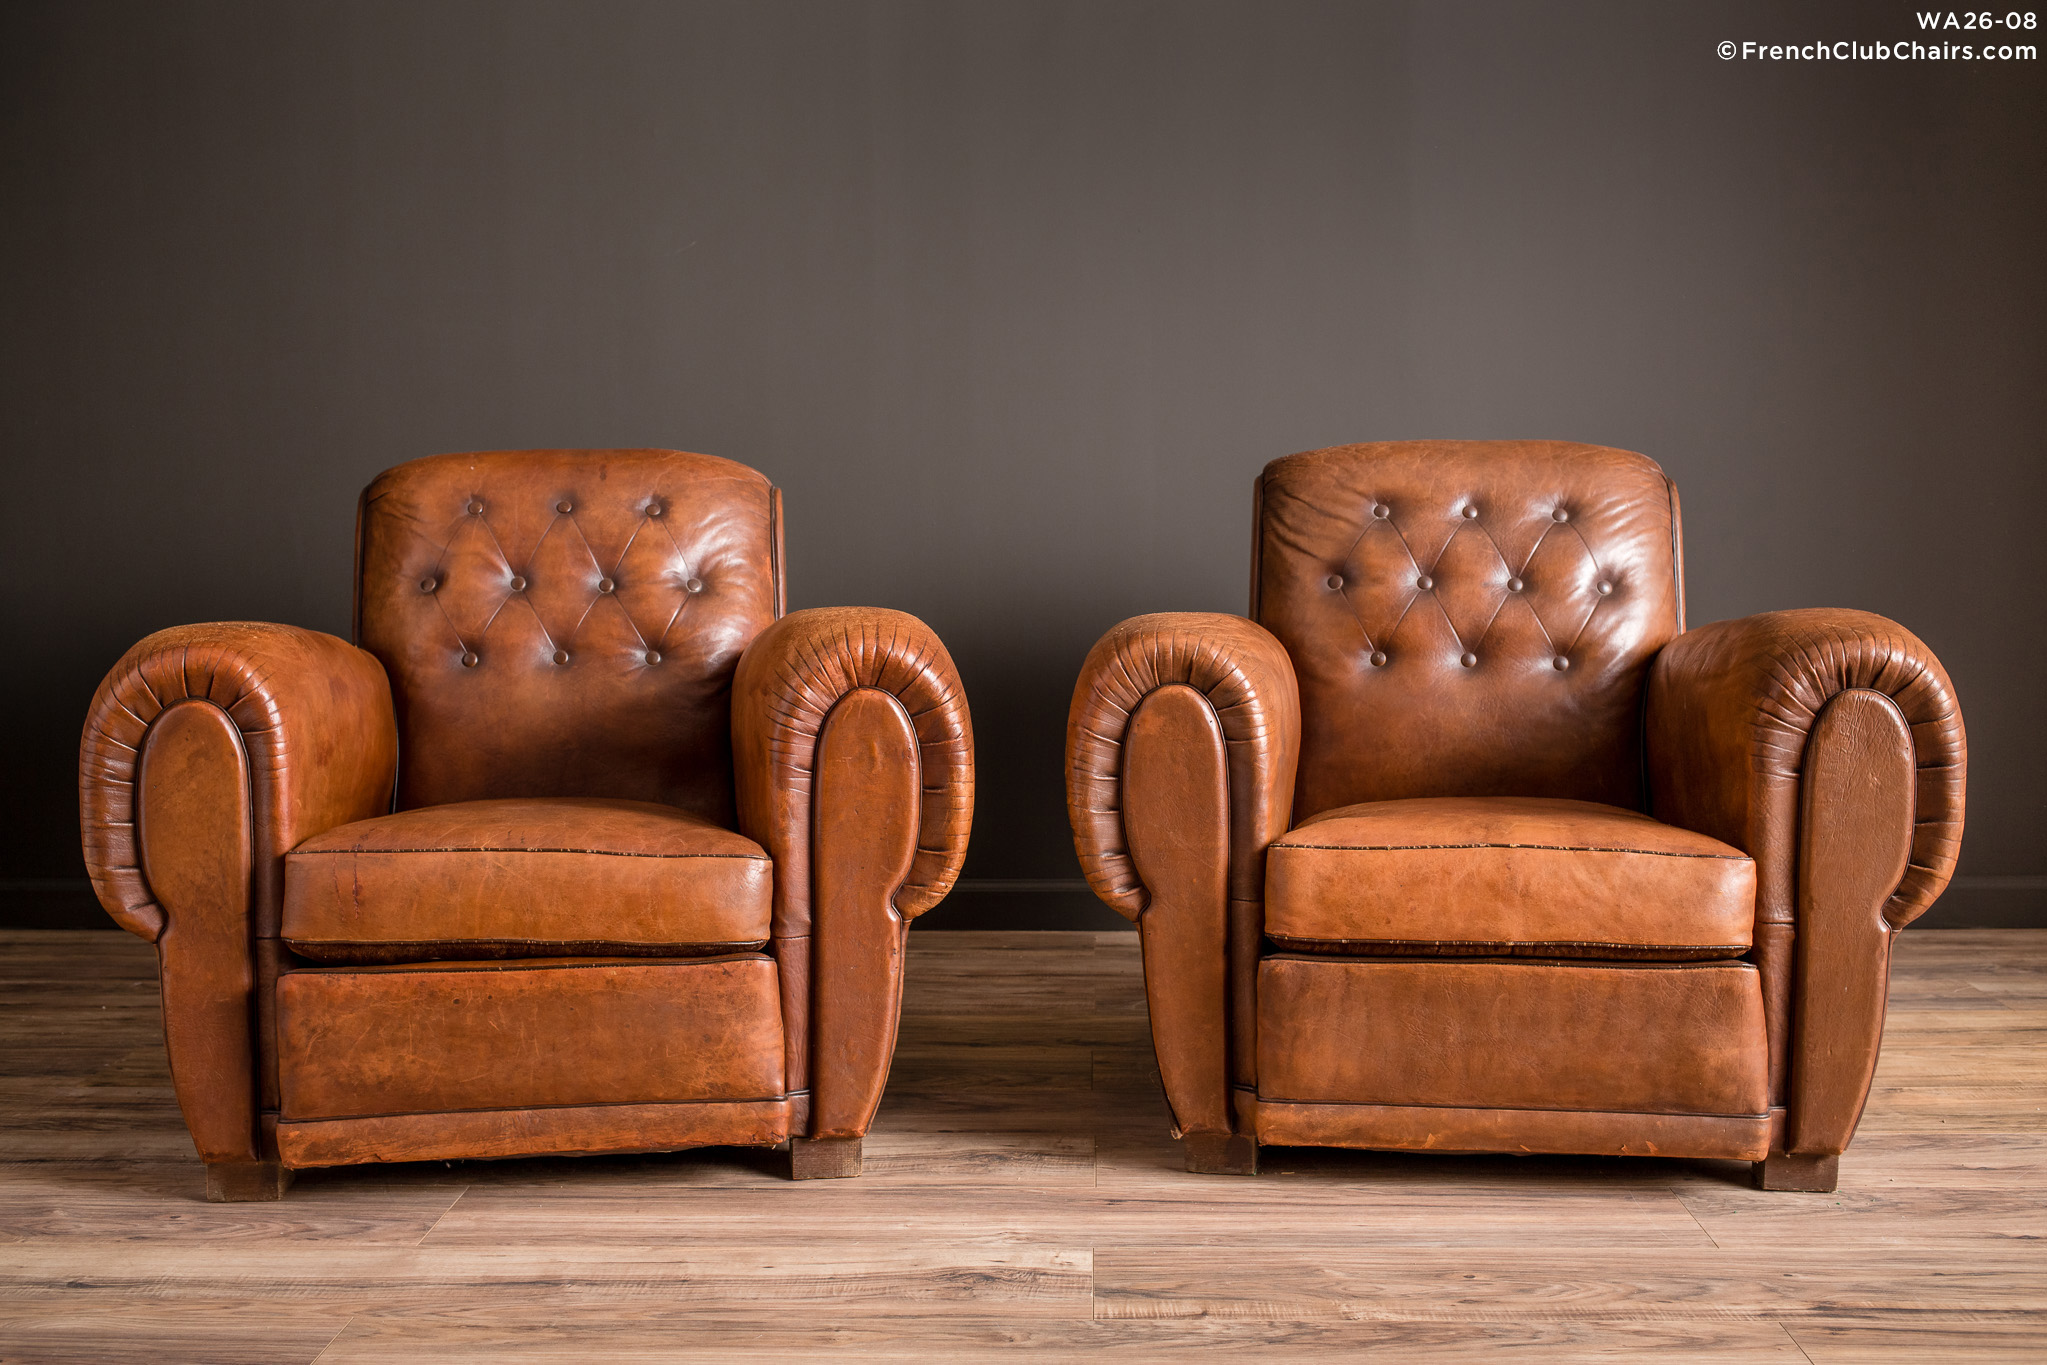 WA_26-08_Pigalle_Rollback_Classic_Pair_R_1TQ-v01-williams-antiks-leather-french-club-chair-wa_fcccom